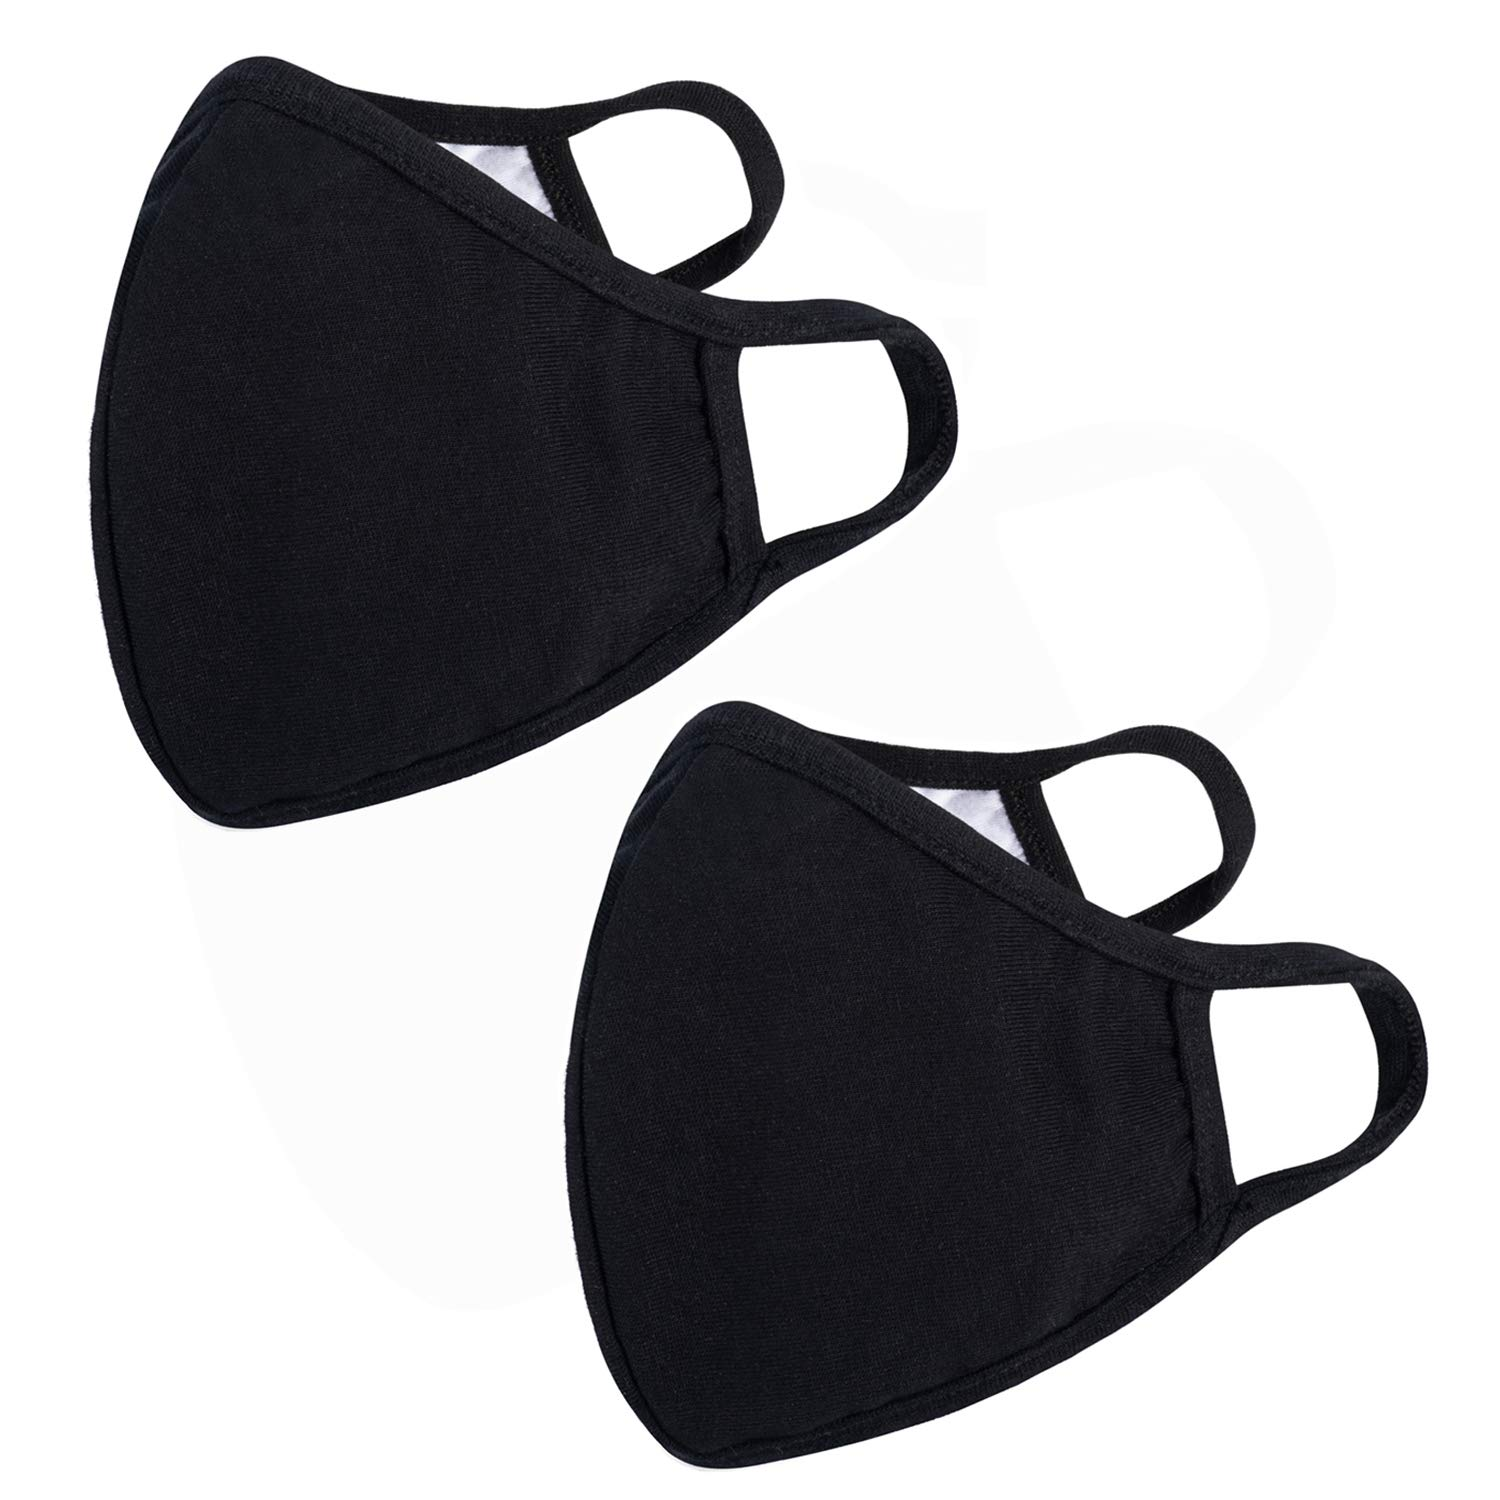 Cotton Cute Mouth Face Mouth Cover- Reusable Cotton Comfy Breathable Outdoor Fashion Face Protections Man and Woman